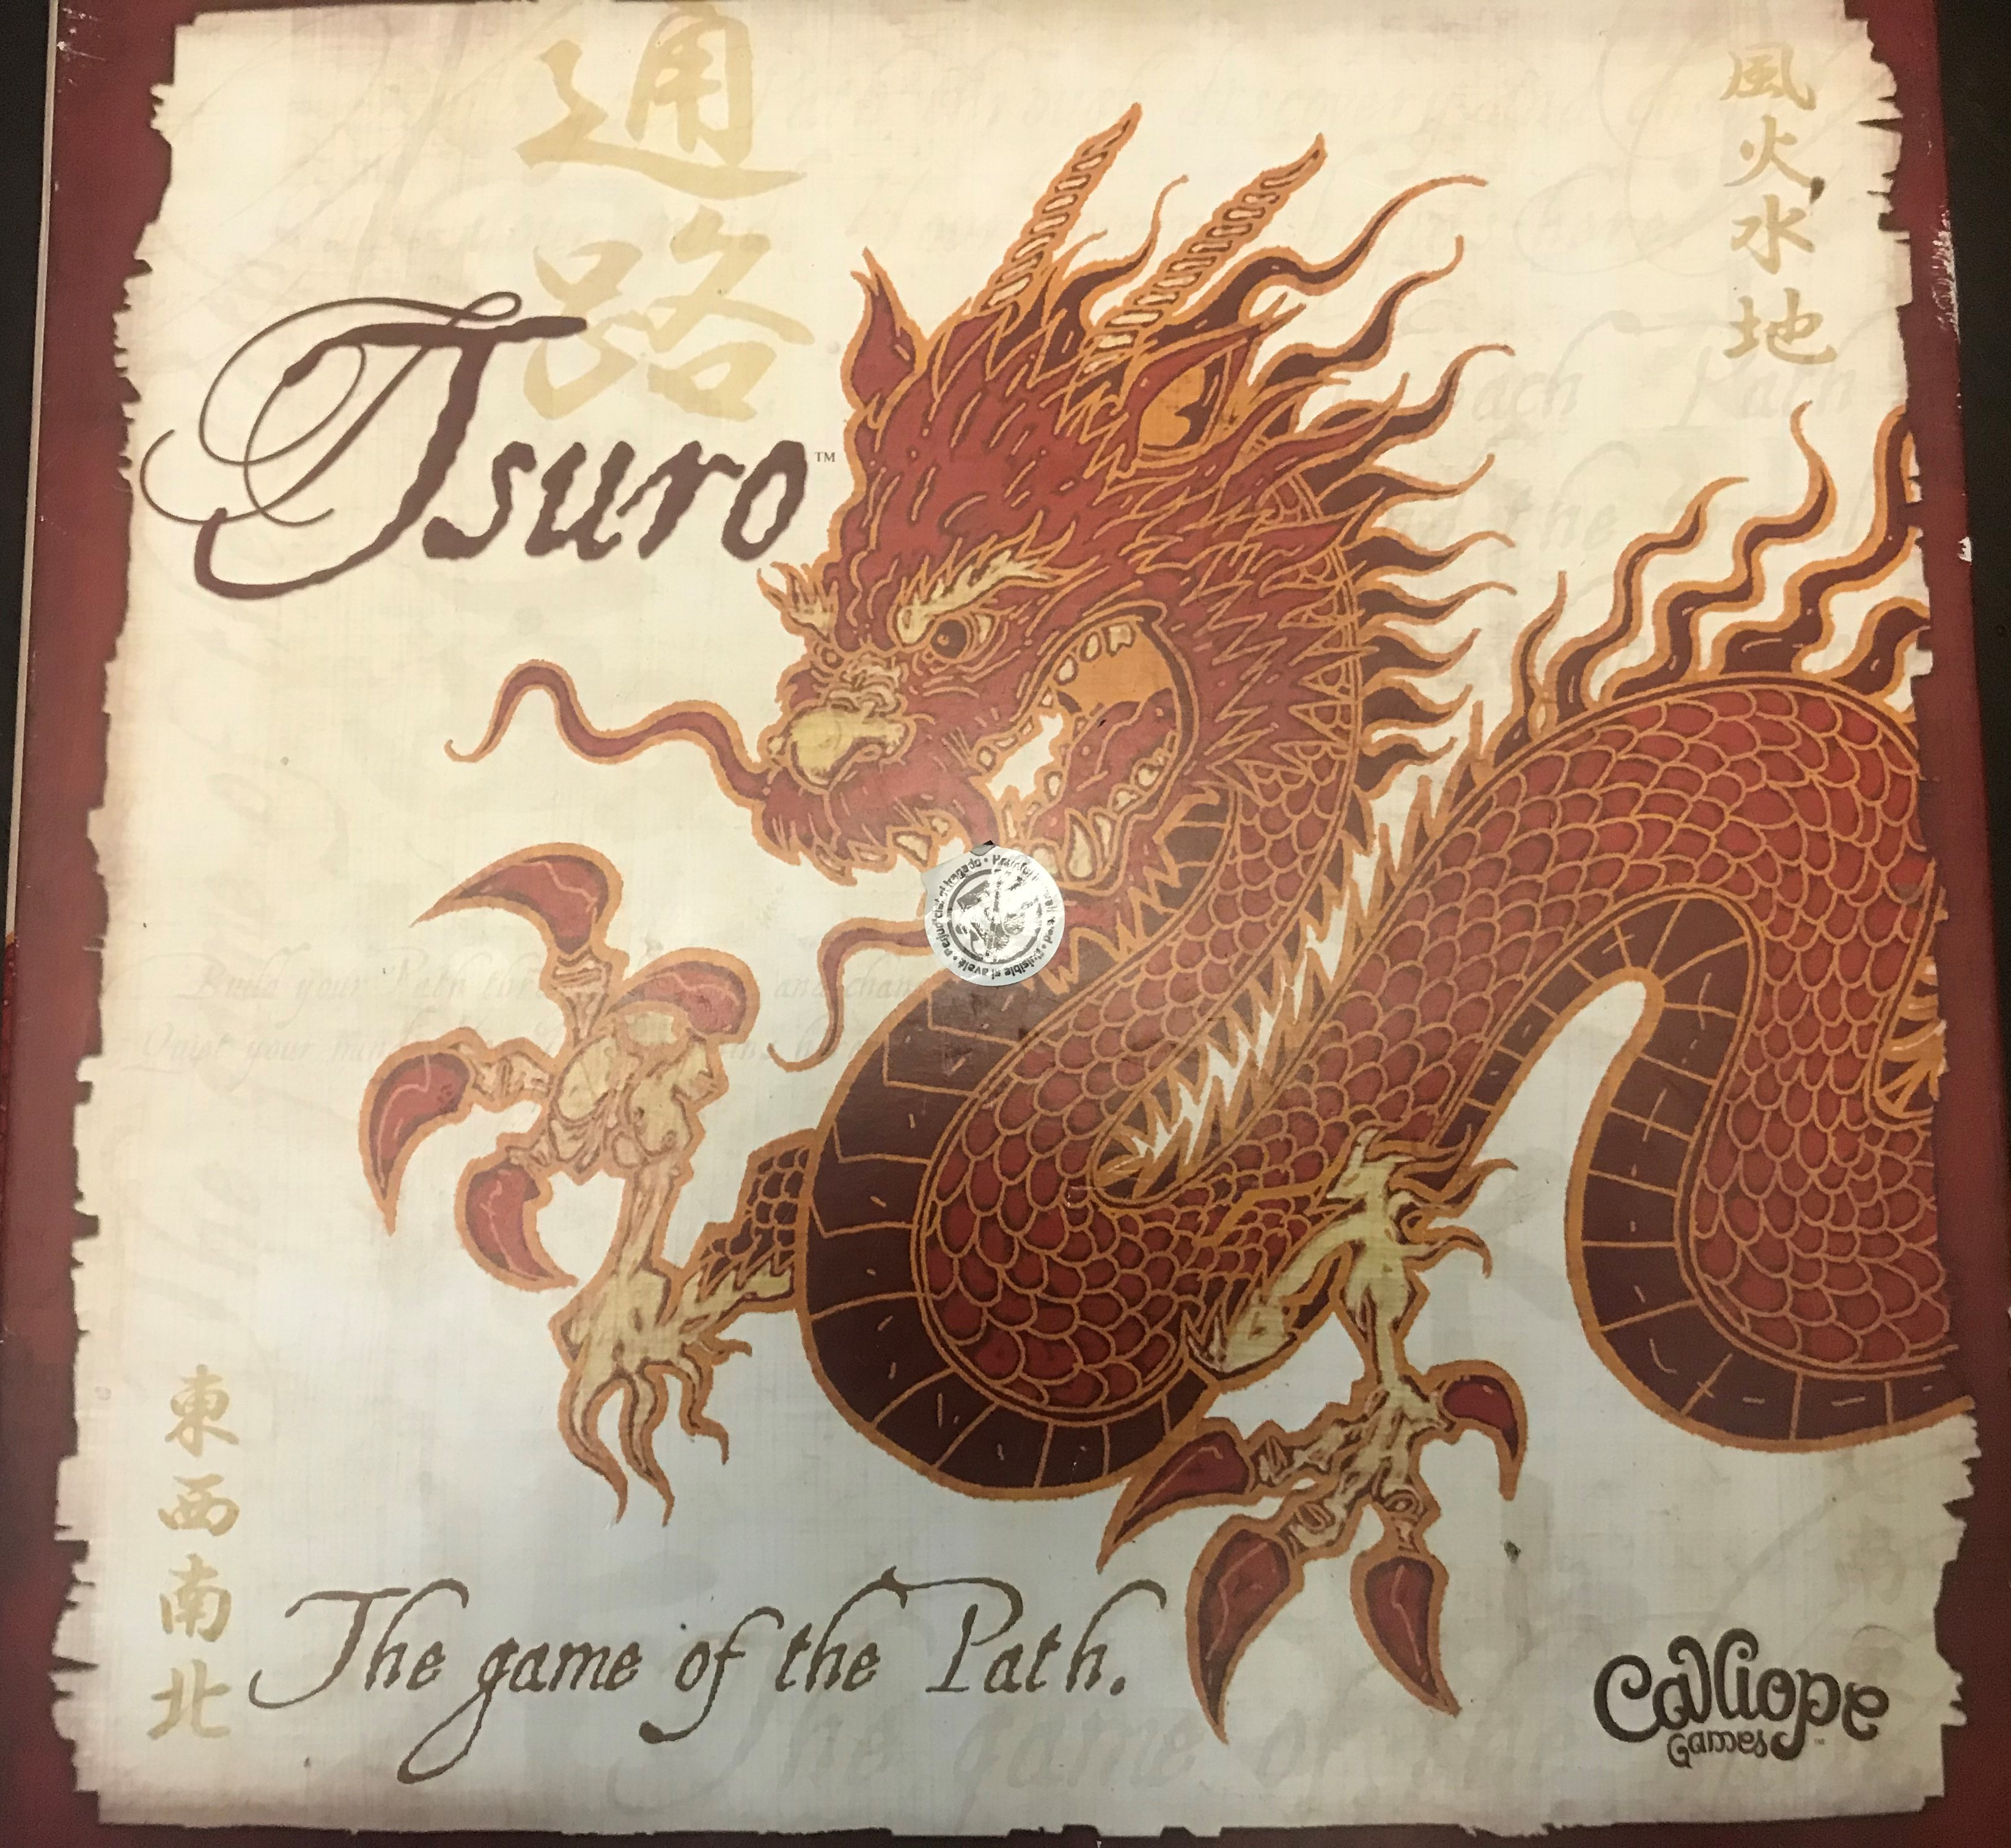 Image shows a red dragon. Text says: Tsuro the game of the path. Calliope games